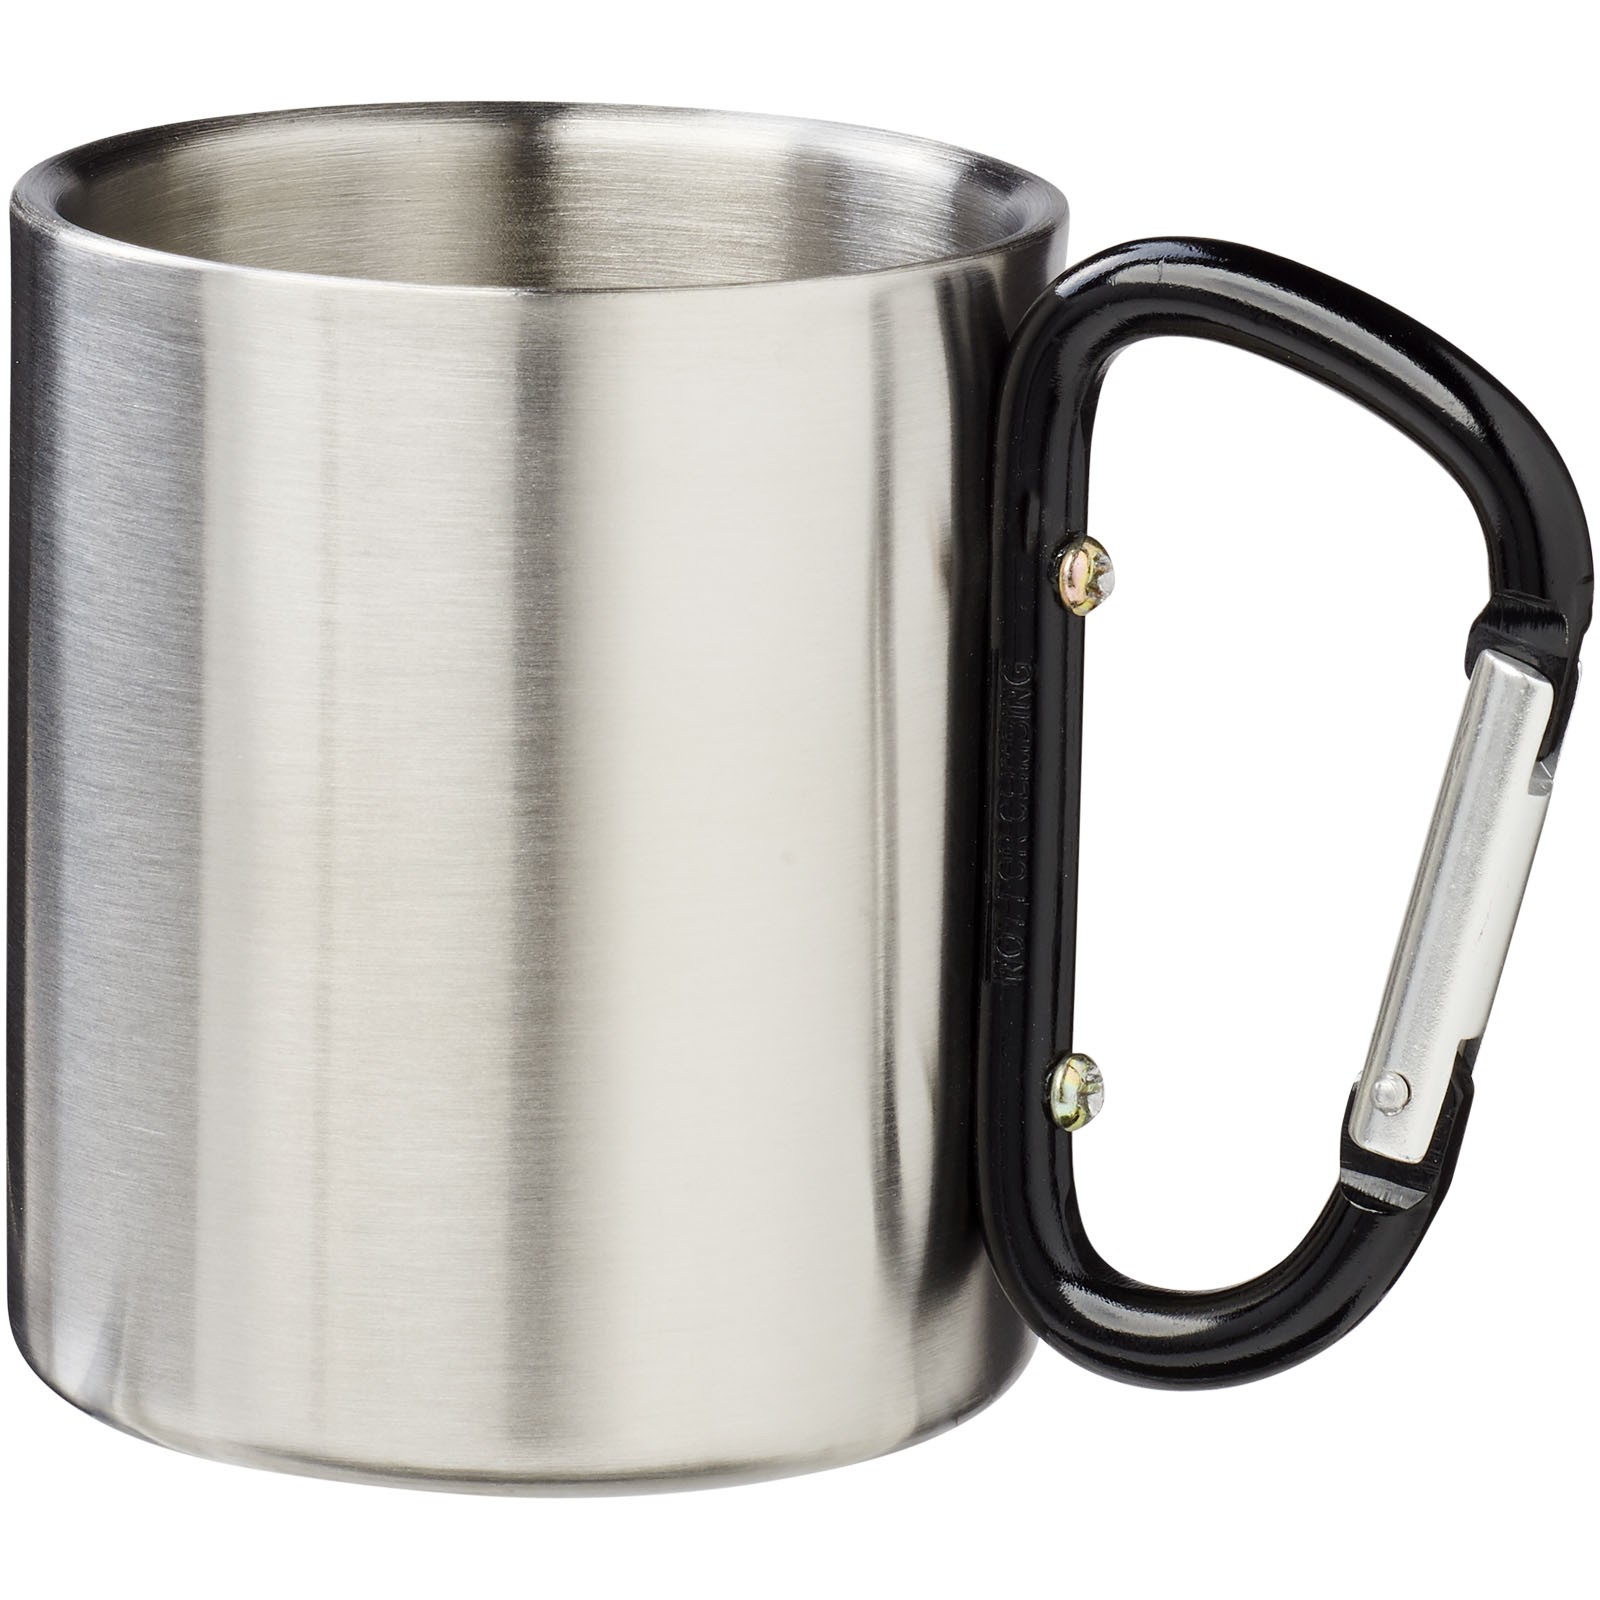 Alps 200 ml insulated mug with carabiner - Solid black